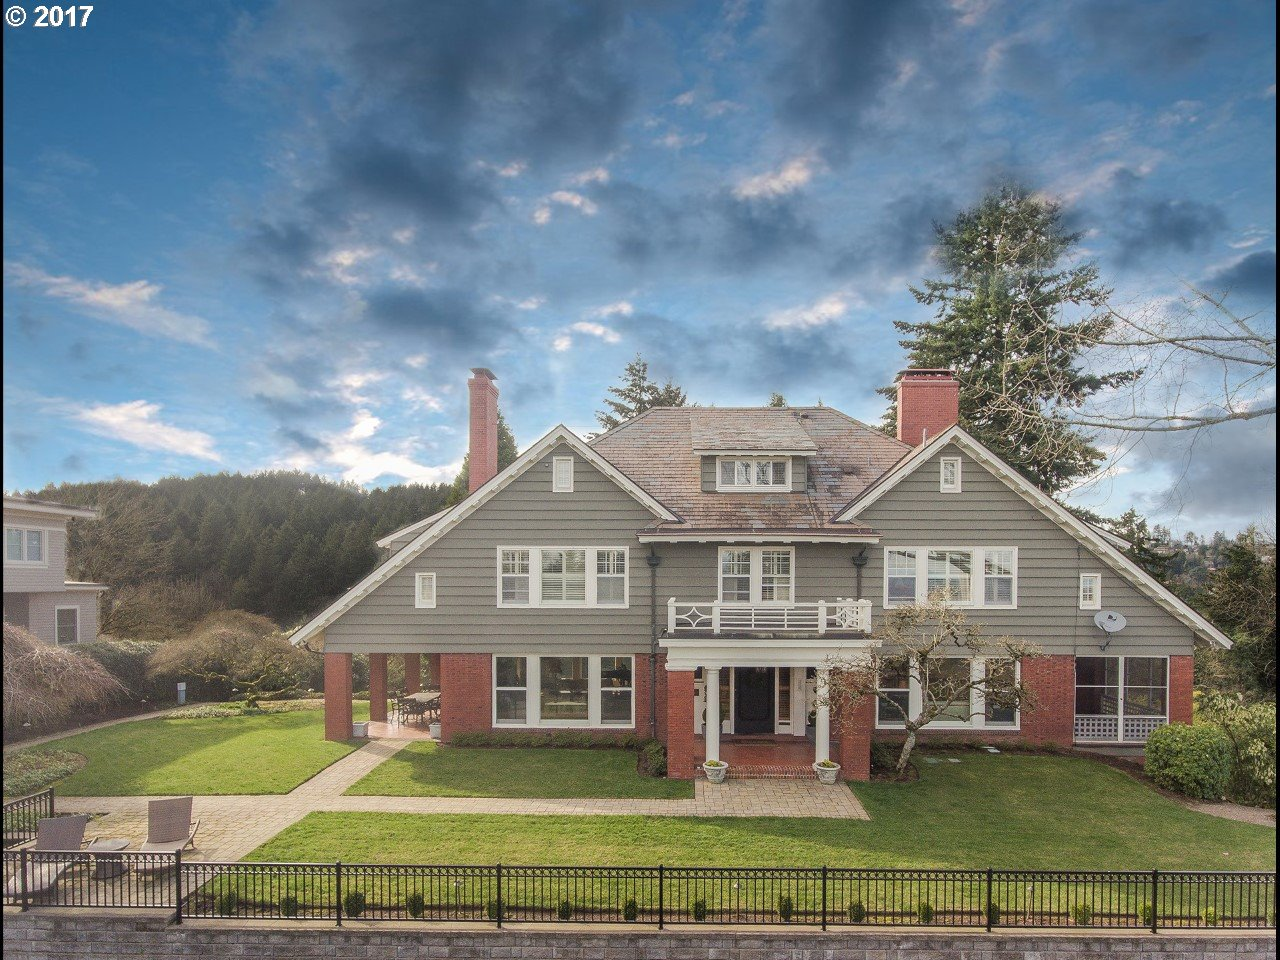 8483 sq. ft 5 bedrooms 5 bathrooms  House For Sale,Portland, OR